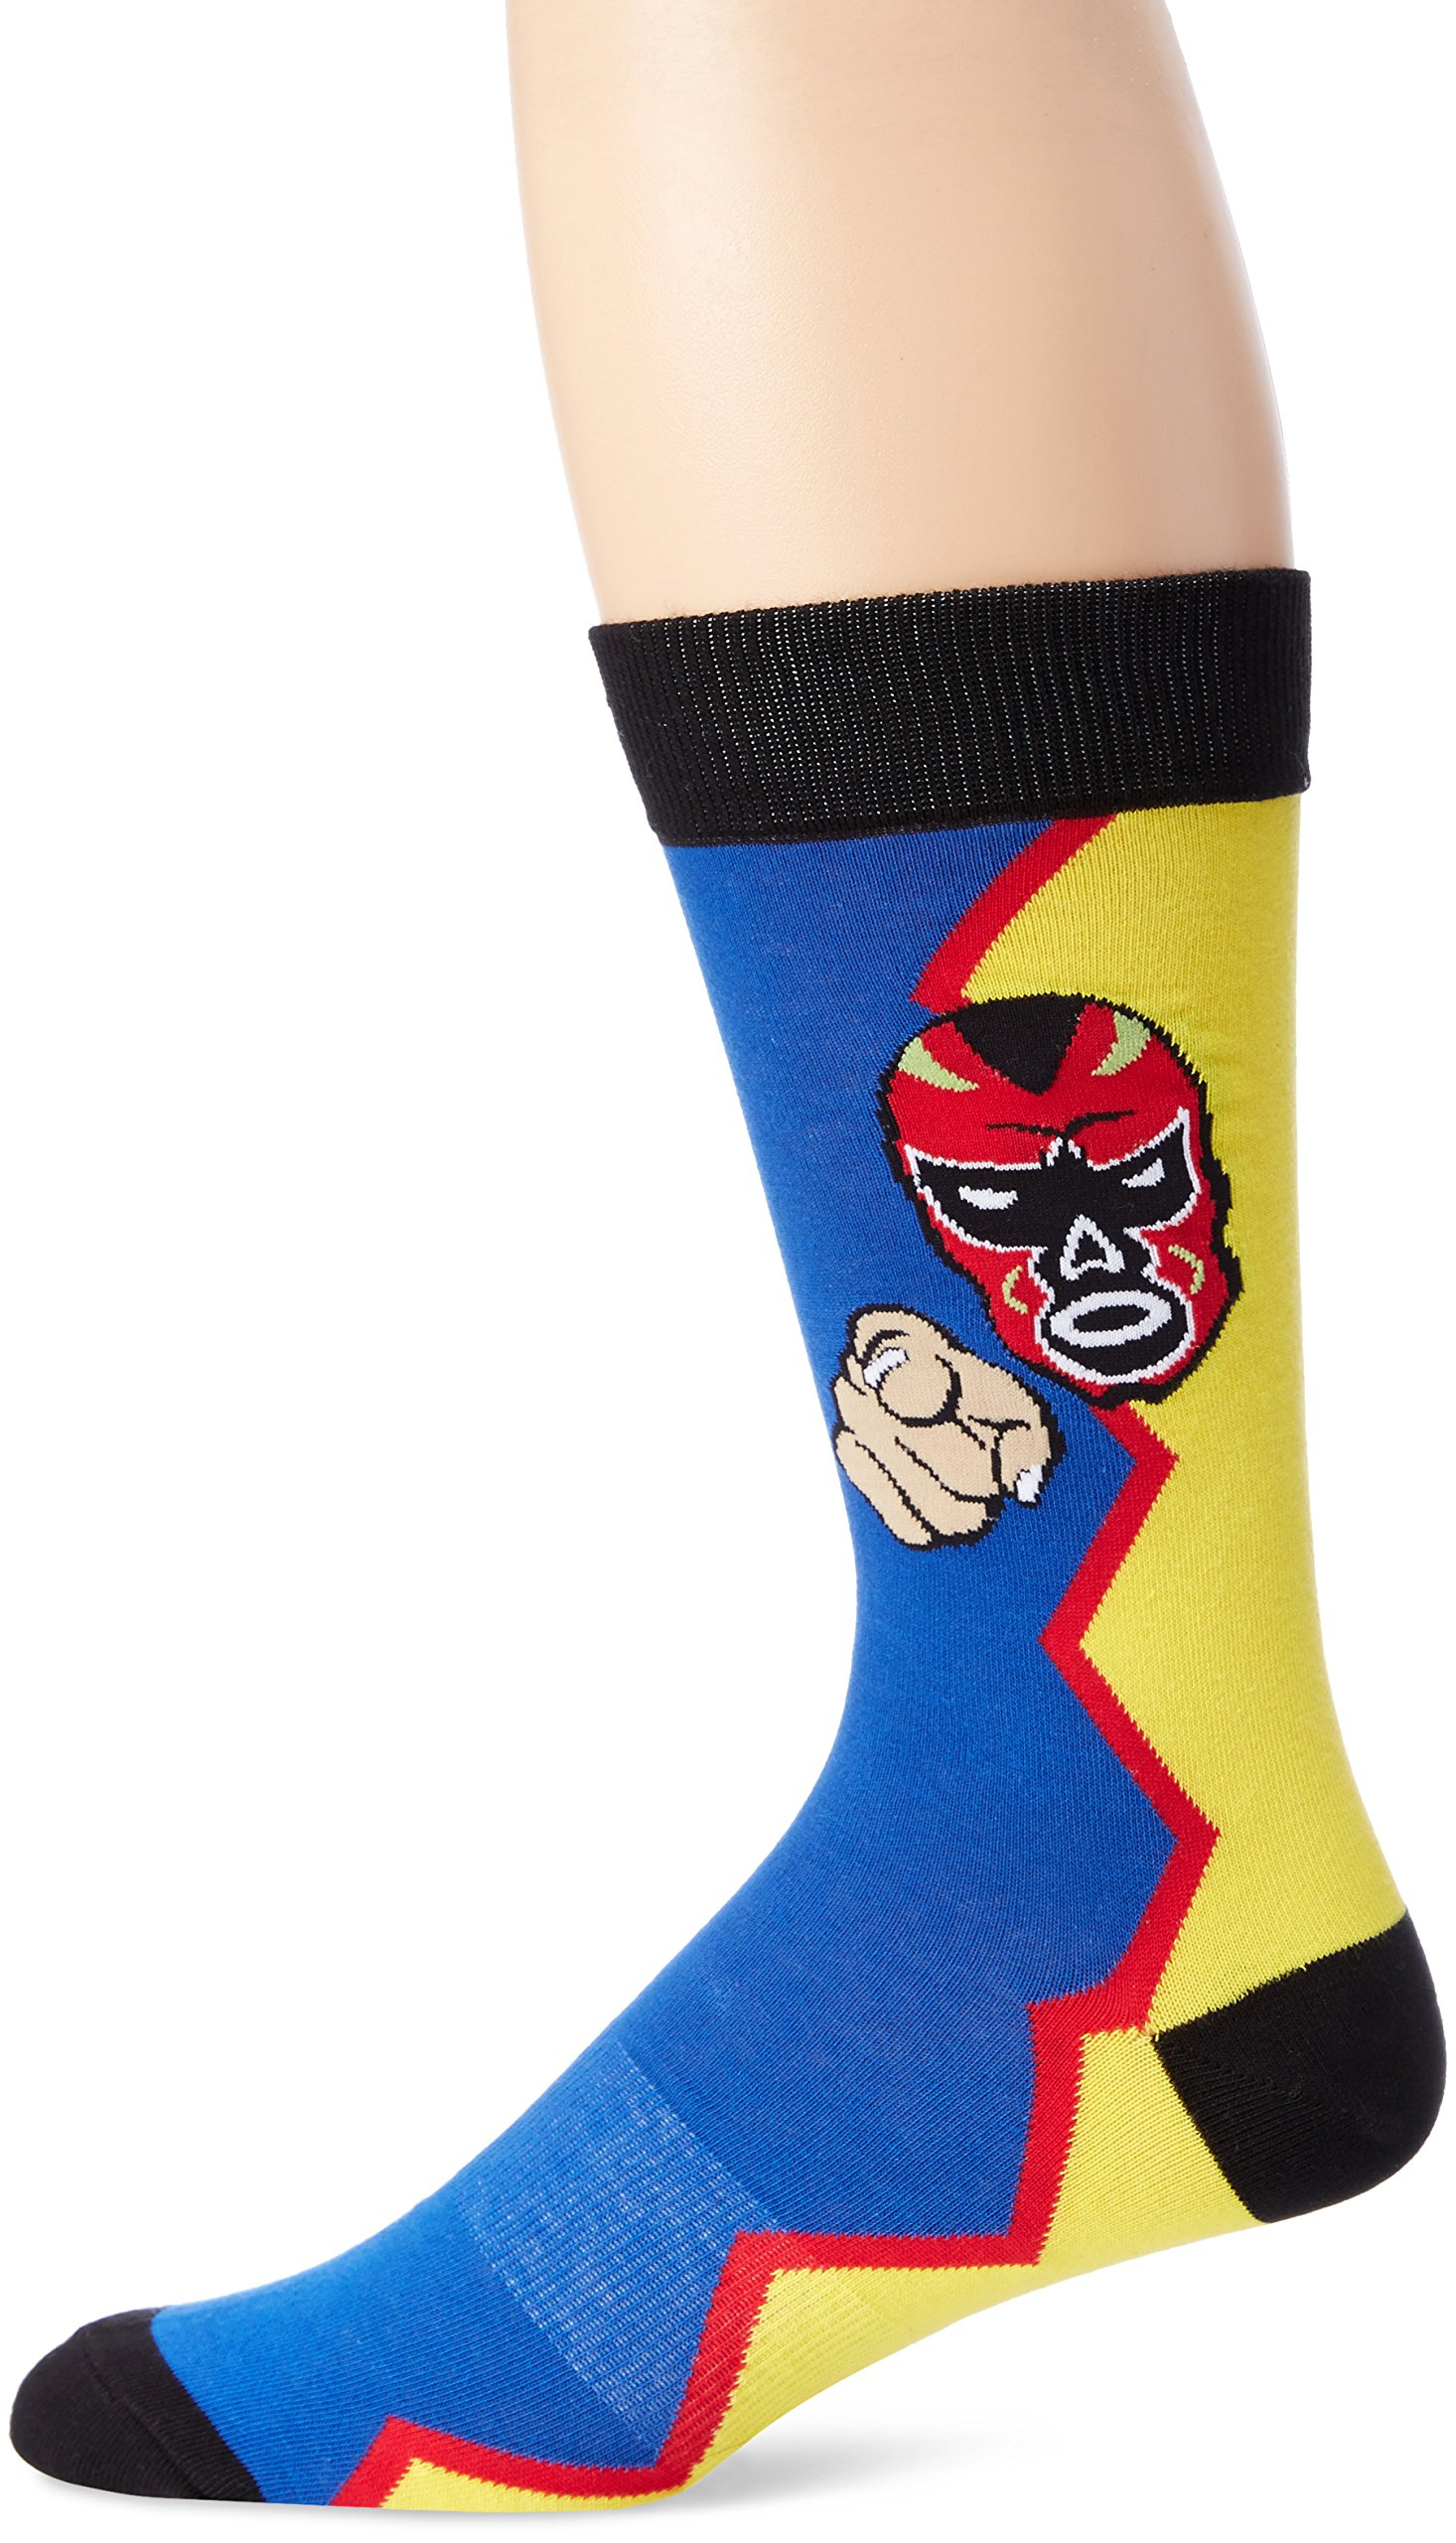 K. Bell Socks Men's Wrestling Crew Sock, Yellow/Royal, Sock Size:10-13/Shoe Size: 6-12